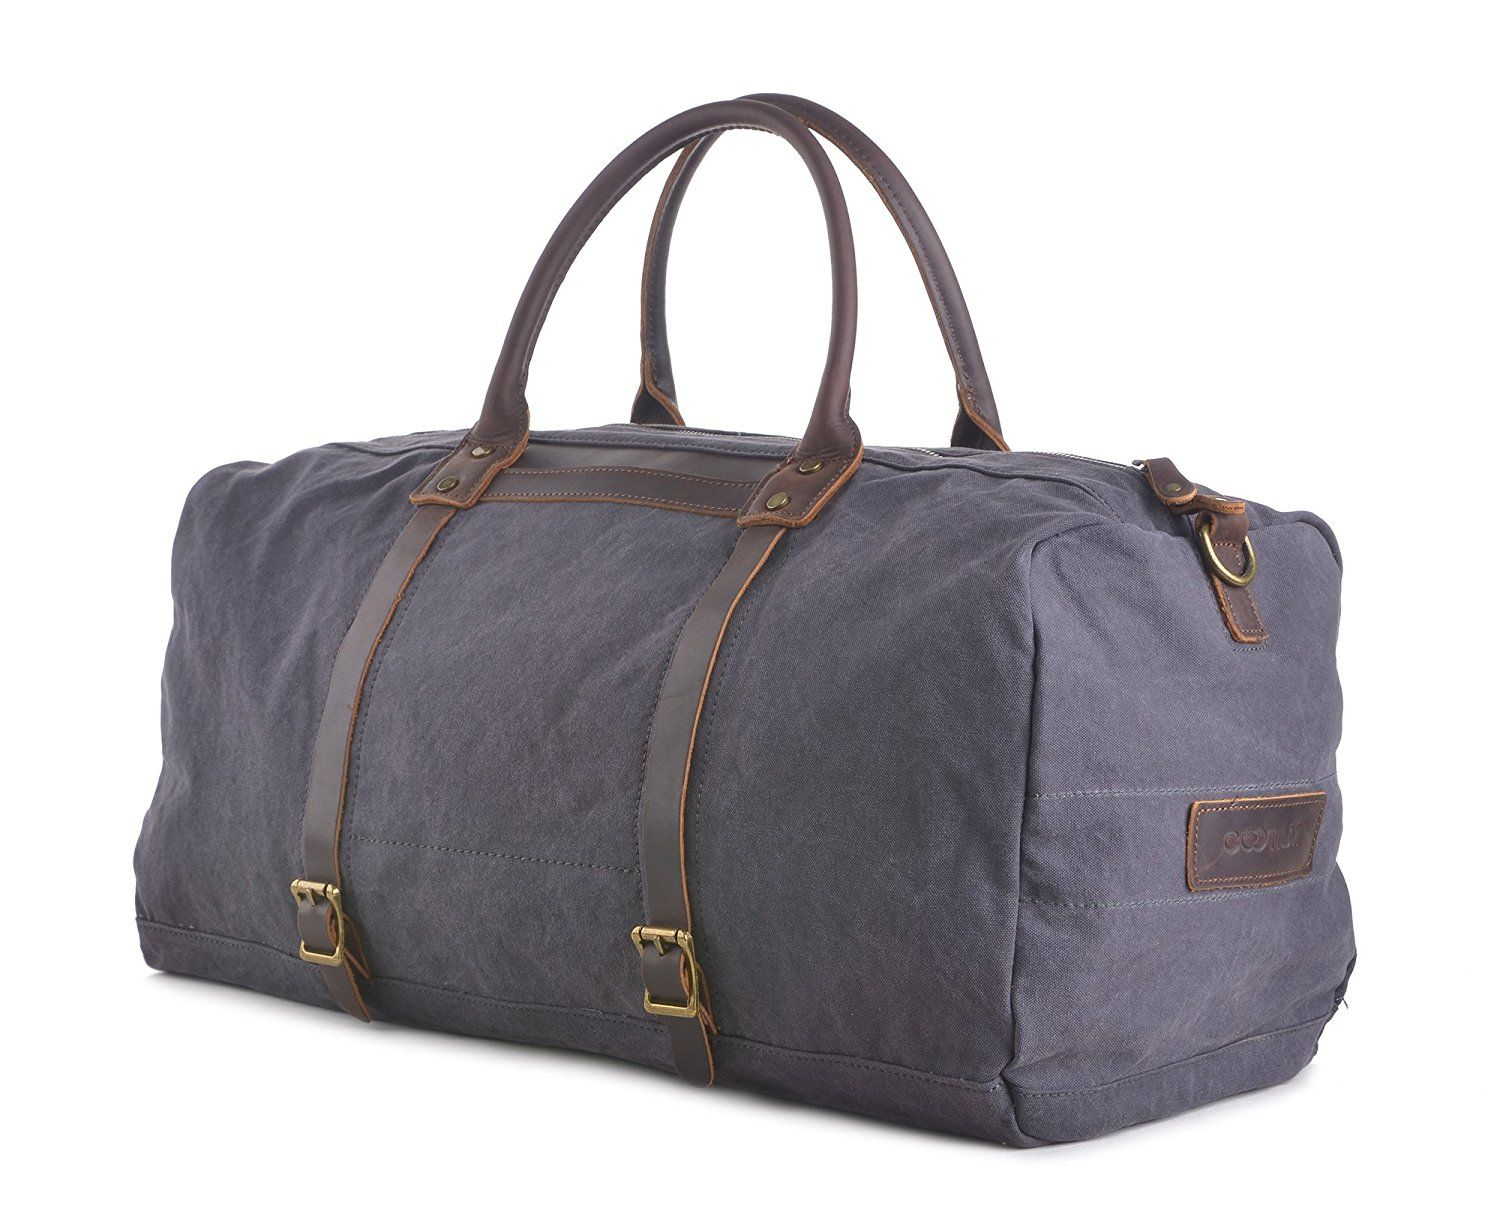 a5d8fcc356 Gootium Oversized Vintage Canvas Duffel Bag Travel Tote Sports Gym Bag  Weekend Bag   Read more at the image link. (This is an Amazon Affiliate  link and I ...